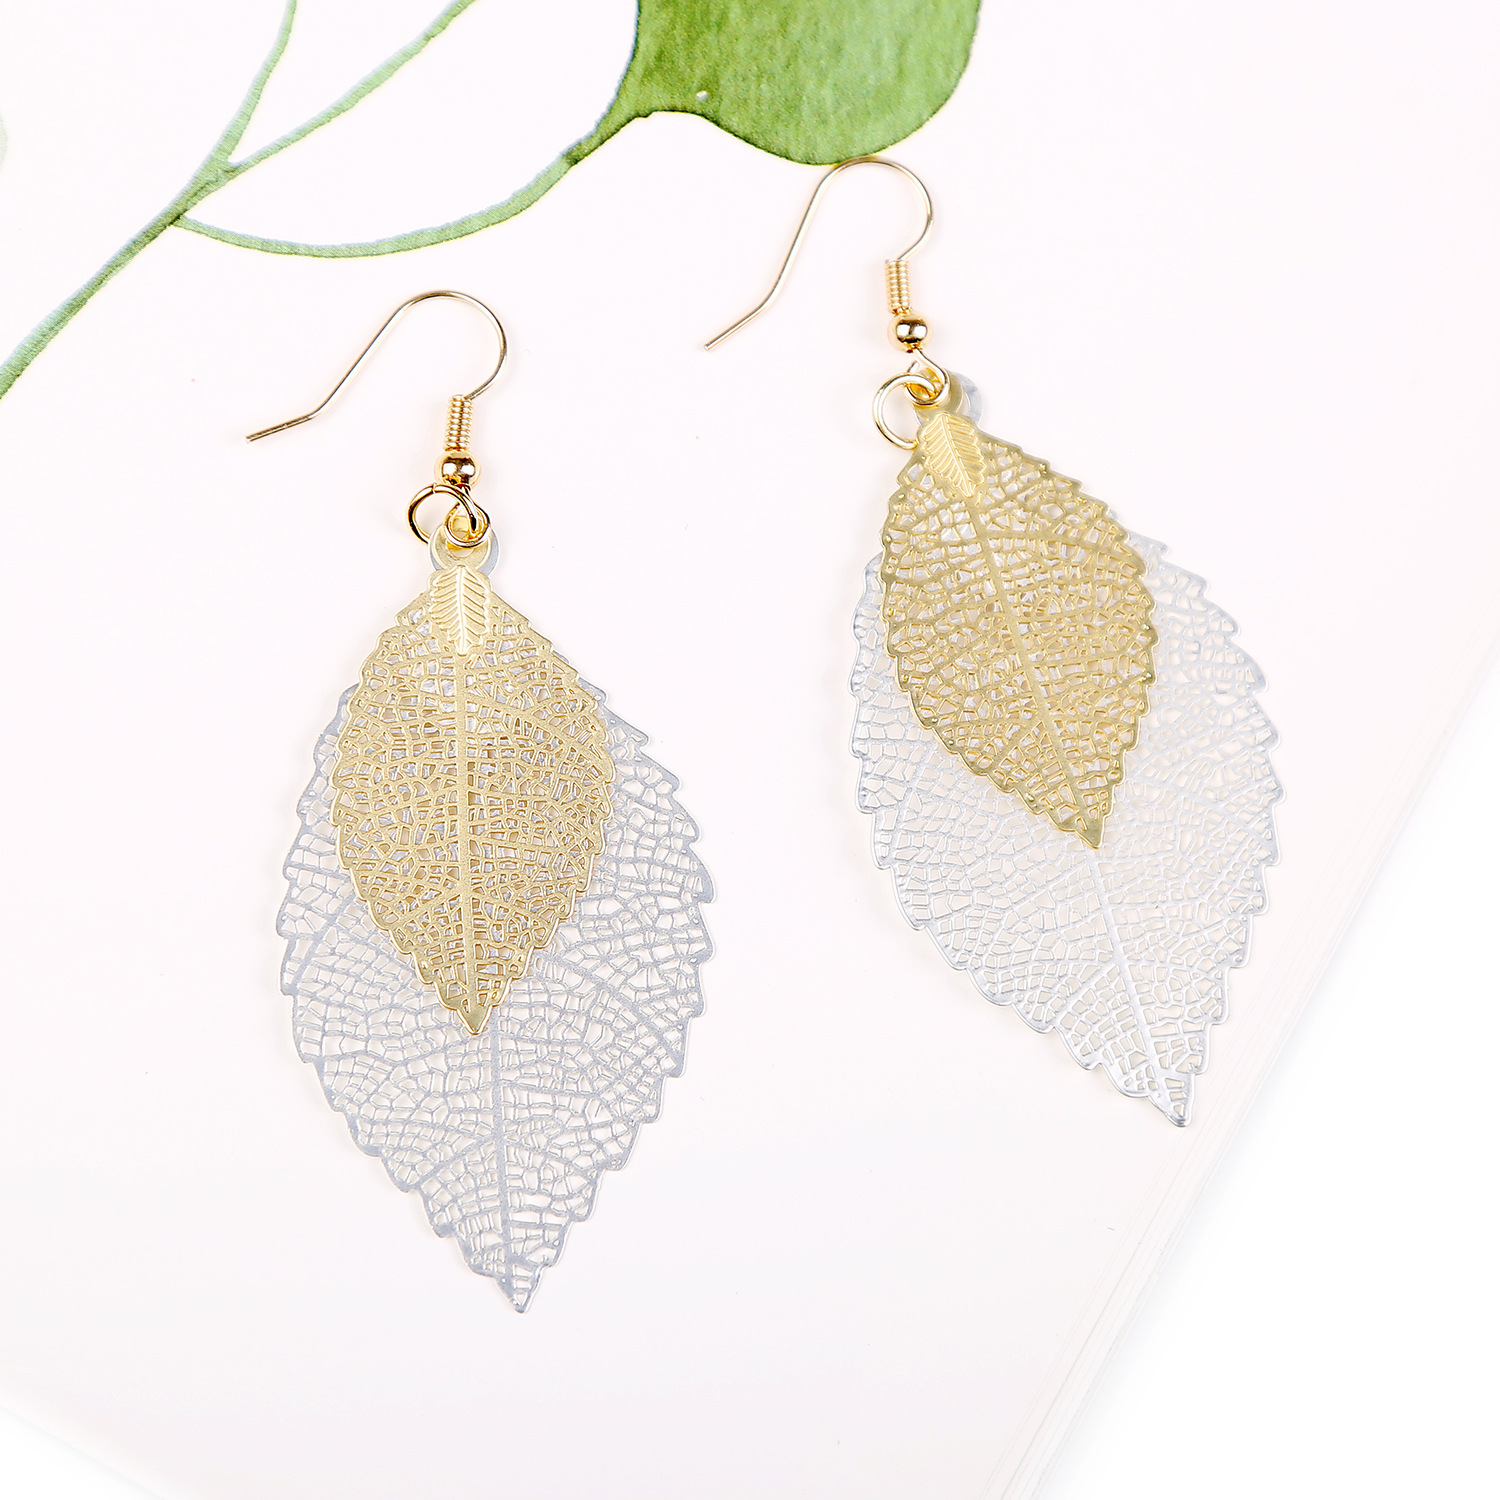 Nihaojewelry Earrings Leaf Earrings Golden Simple Double Cutout Leaf Earrings wholesales fashion NHJJ199347